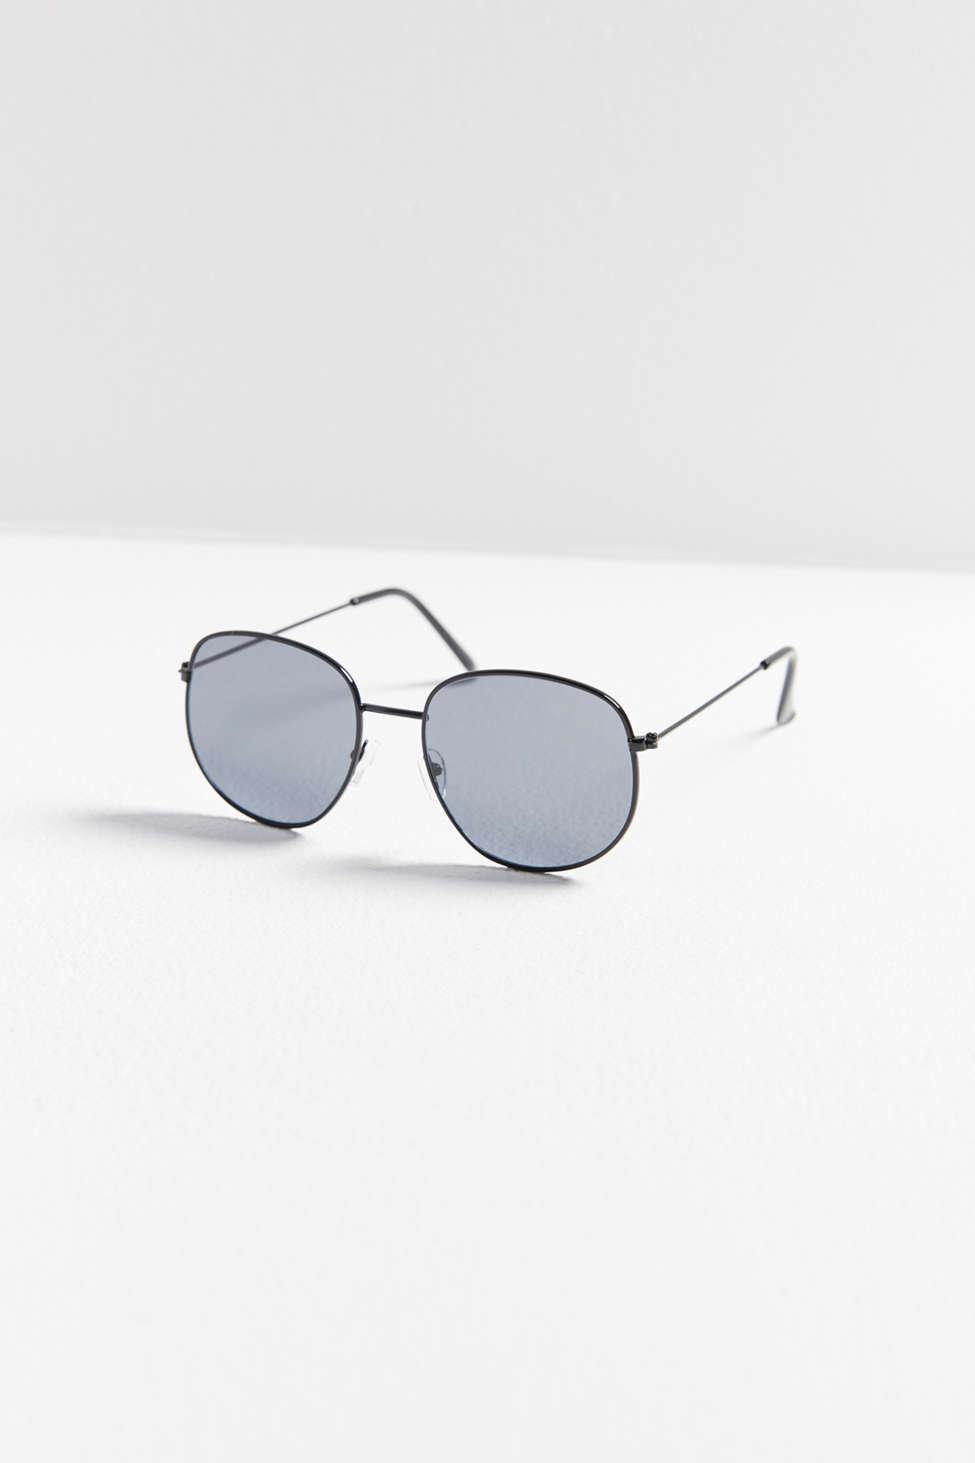 33ea8d507fbd Lyst - Urban Outfitters Catch You Later Square Sunglasses in Black